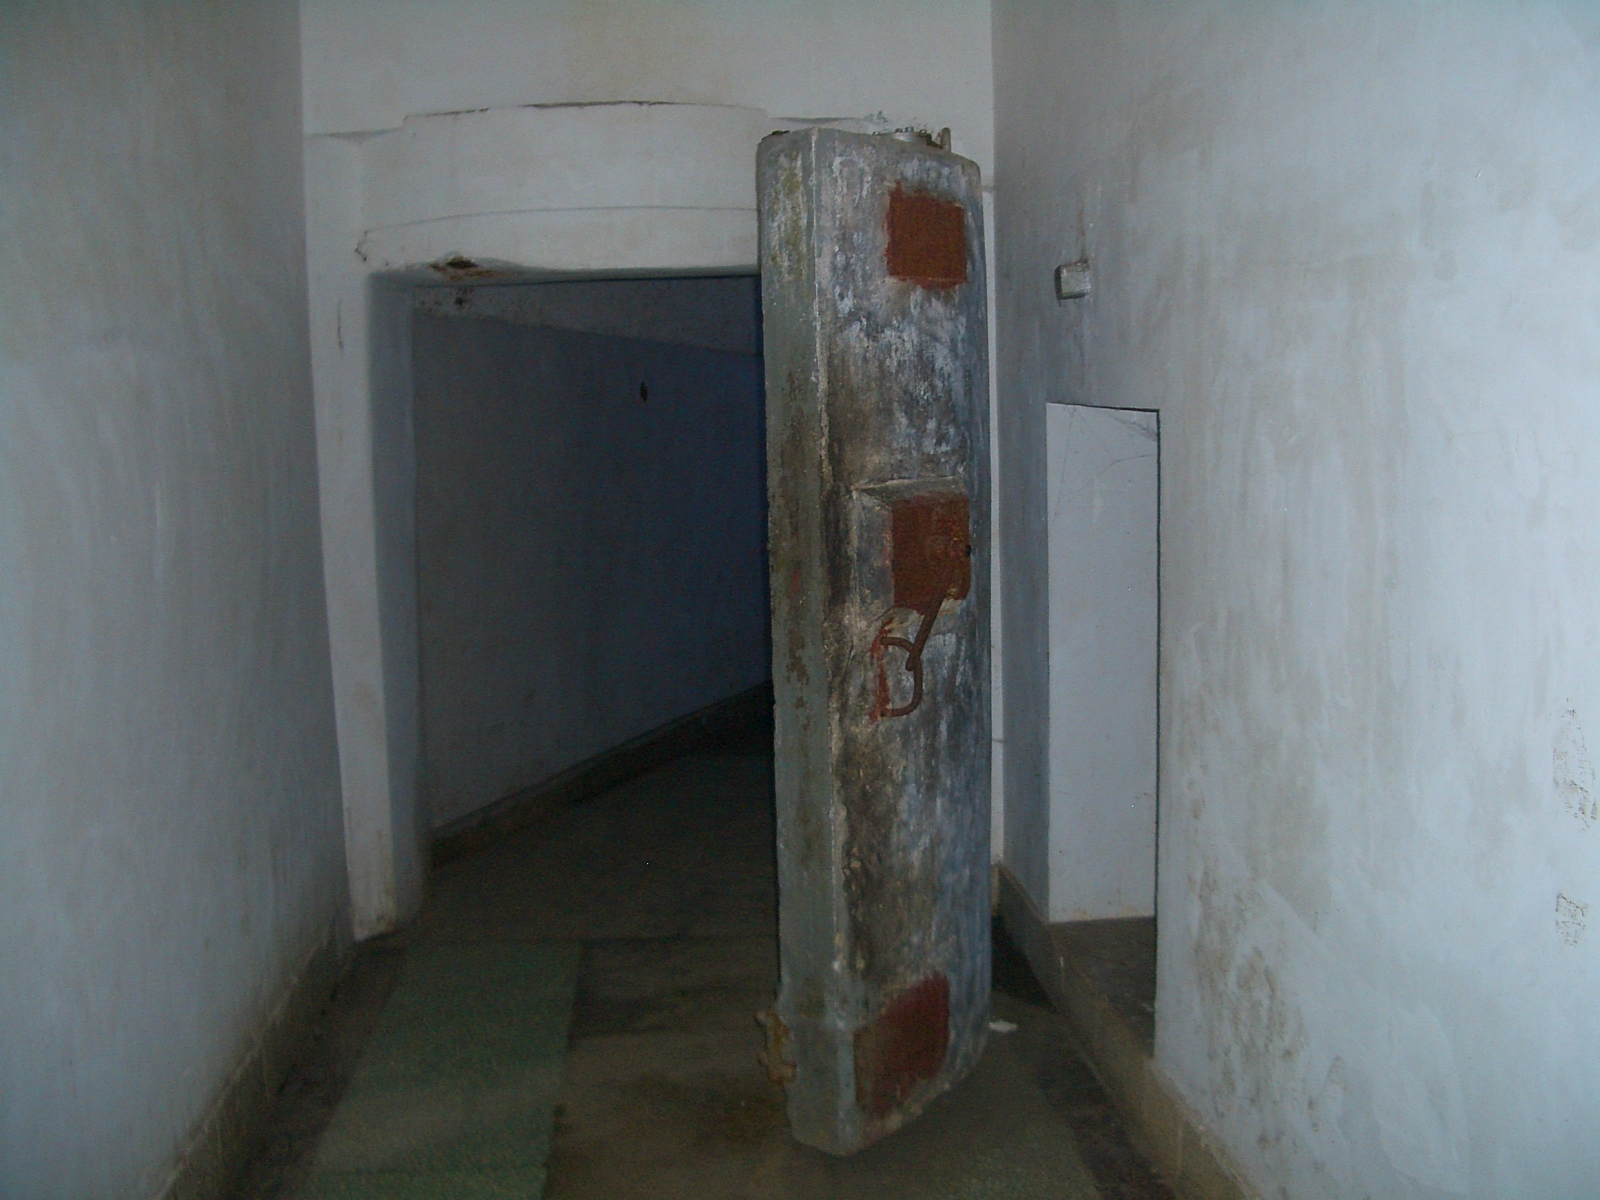 The door to the nuclear war shelter complex in the tunnels of Underground Project 131, in Hubei, China.